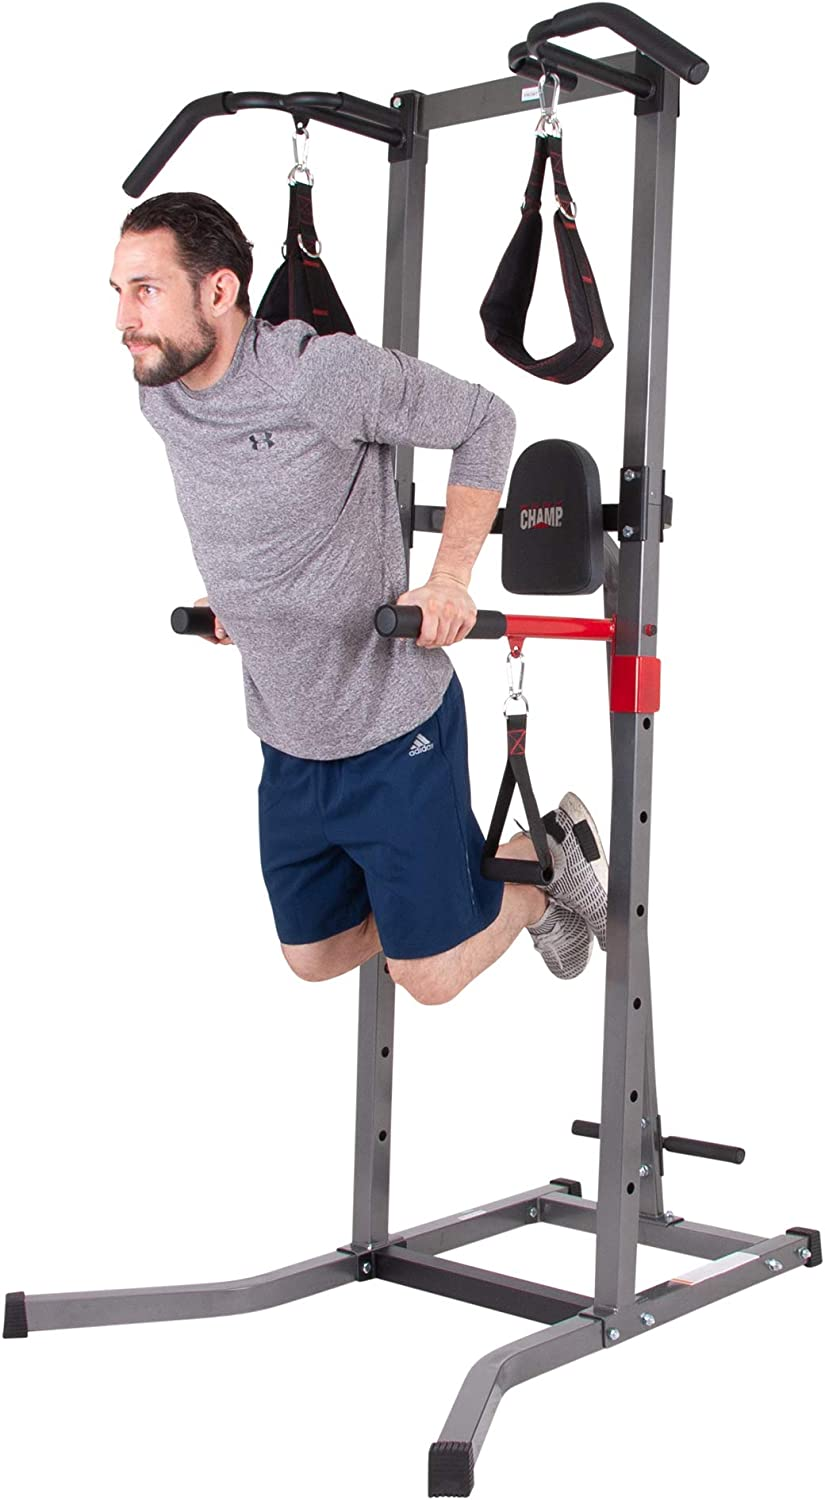 Body Champ Multi Function Power Tower Multi Station Gym Dip Stands Pull Up Push Up VKR1987